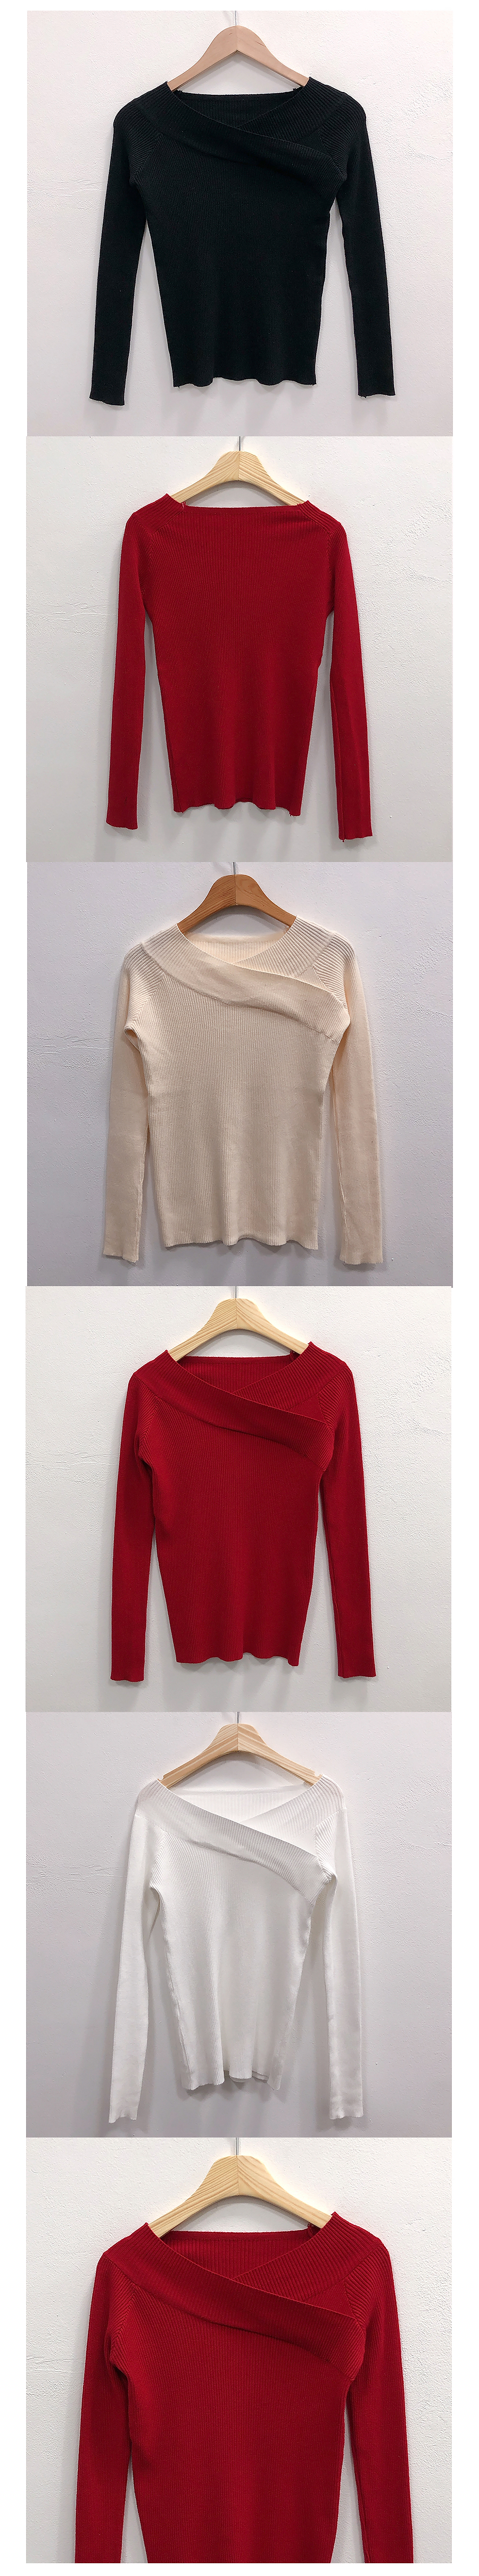 Lua Corrugated Shoulder Knit Tee